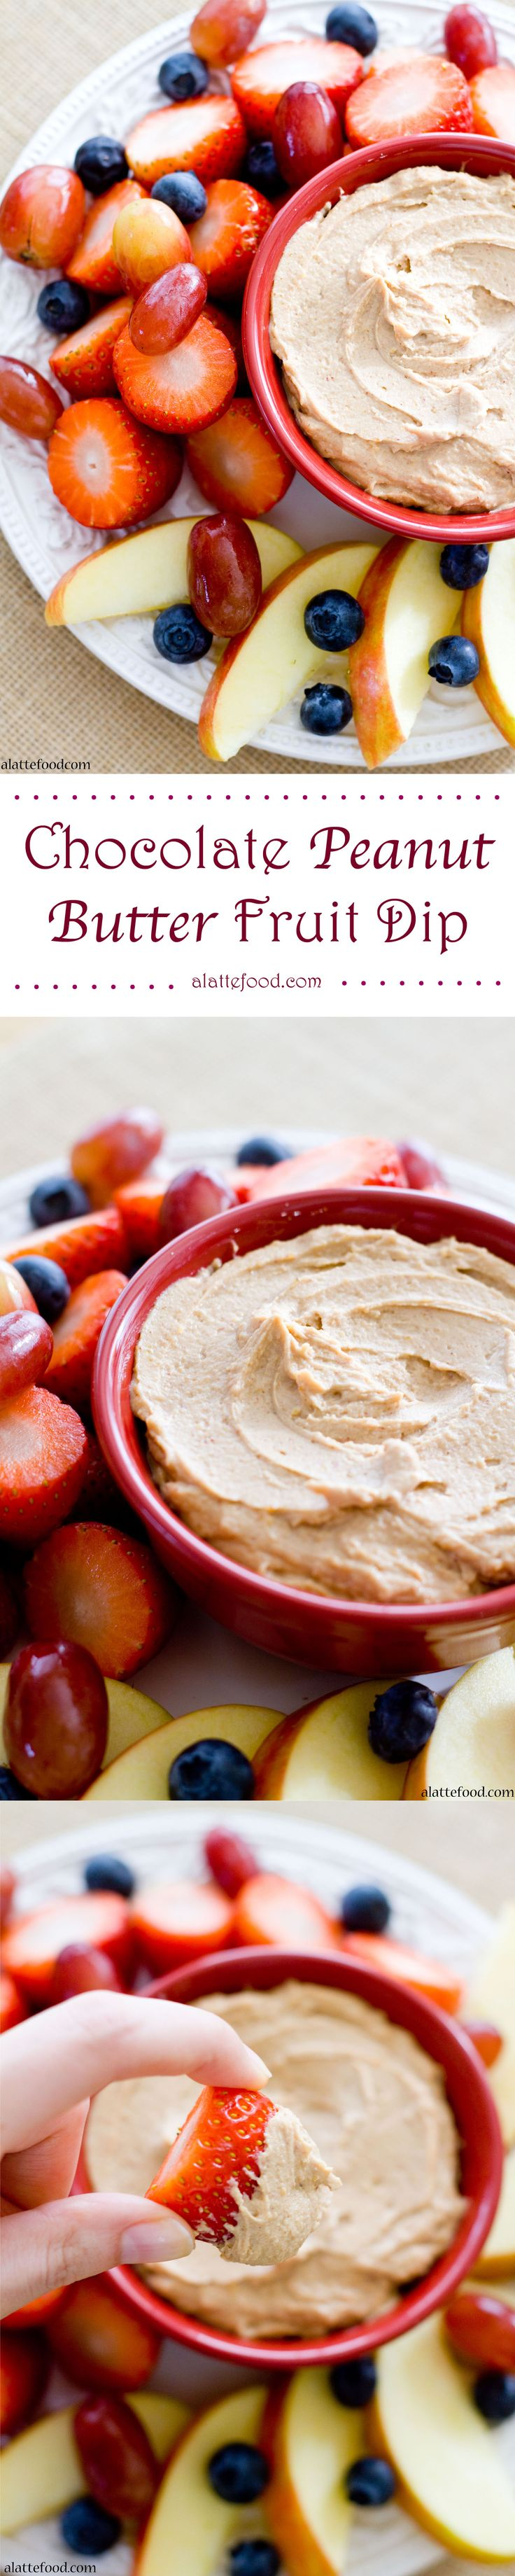 {Healthy and Gluten-Free} Chocolate Peanut Butter Fruit Dip: This 5 ingredient fruit dip can be whipped up in less than 5 minutes and is made with all natural ingredients, which makes this tasty dip super healthy too! Day 3 of the 14 Days of Love!